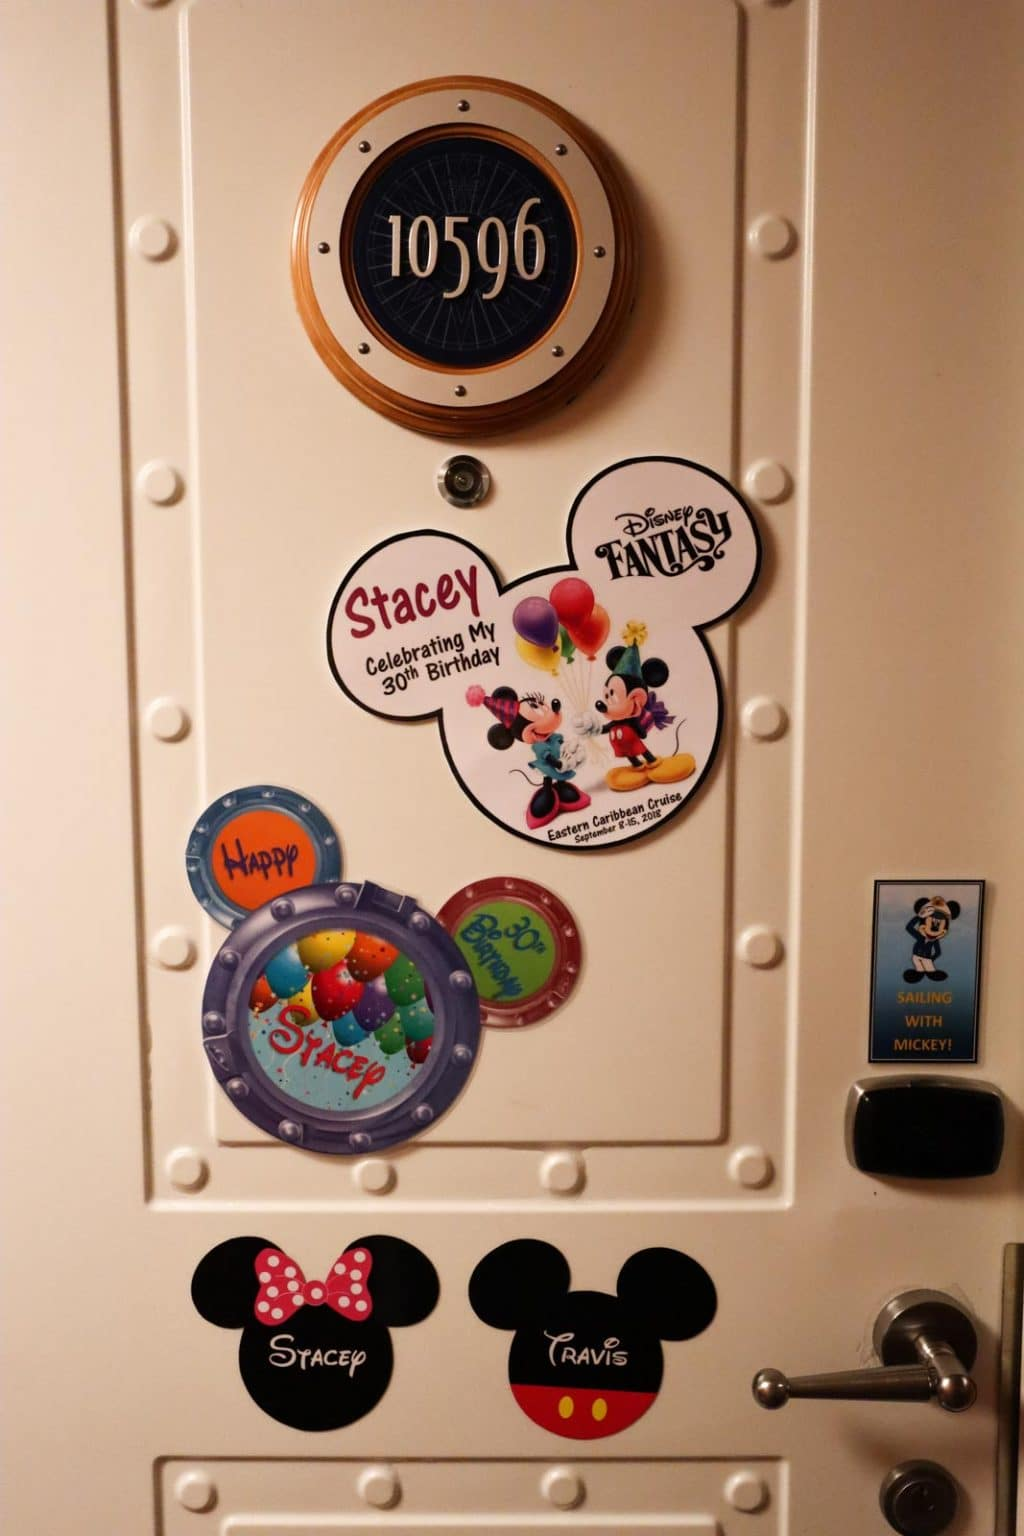 Stateroom #10596 decorated with magnets on a Disney cruise.